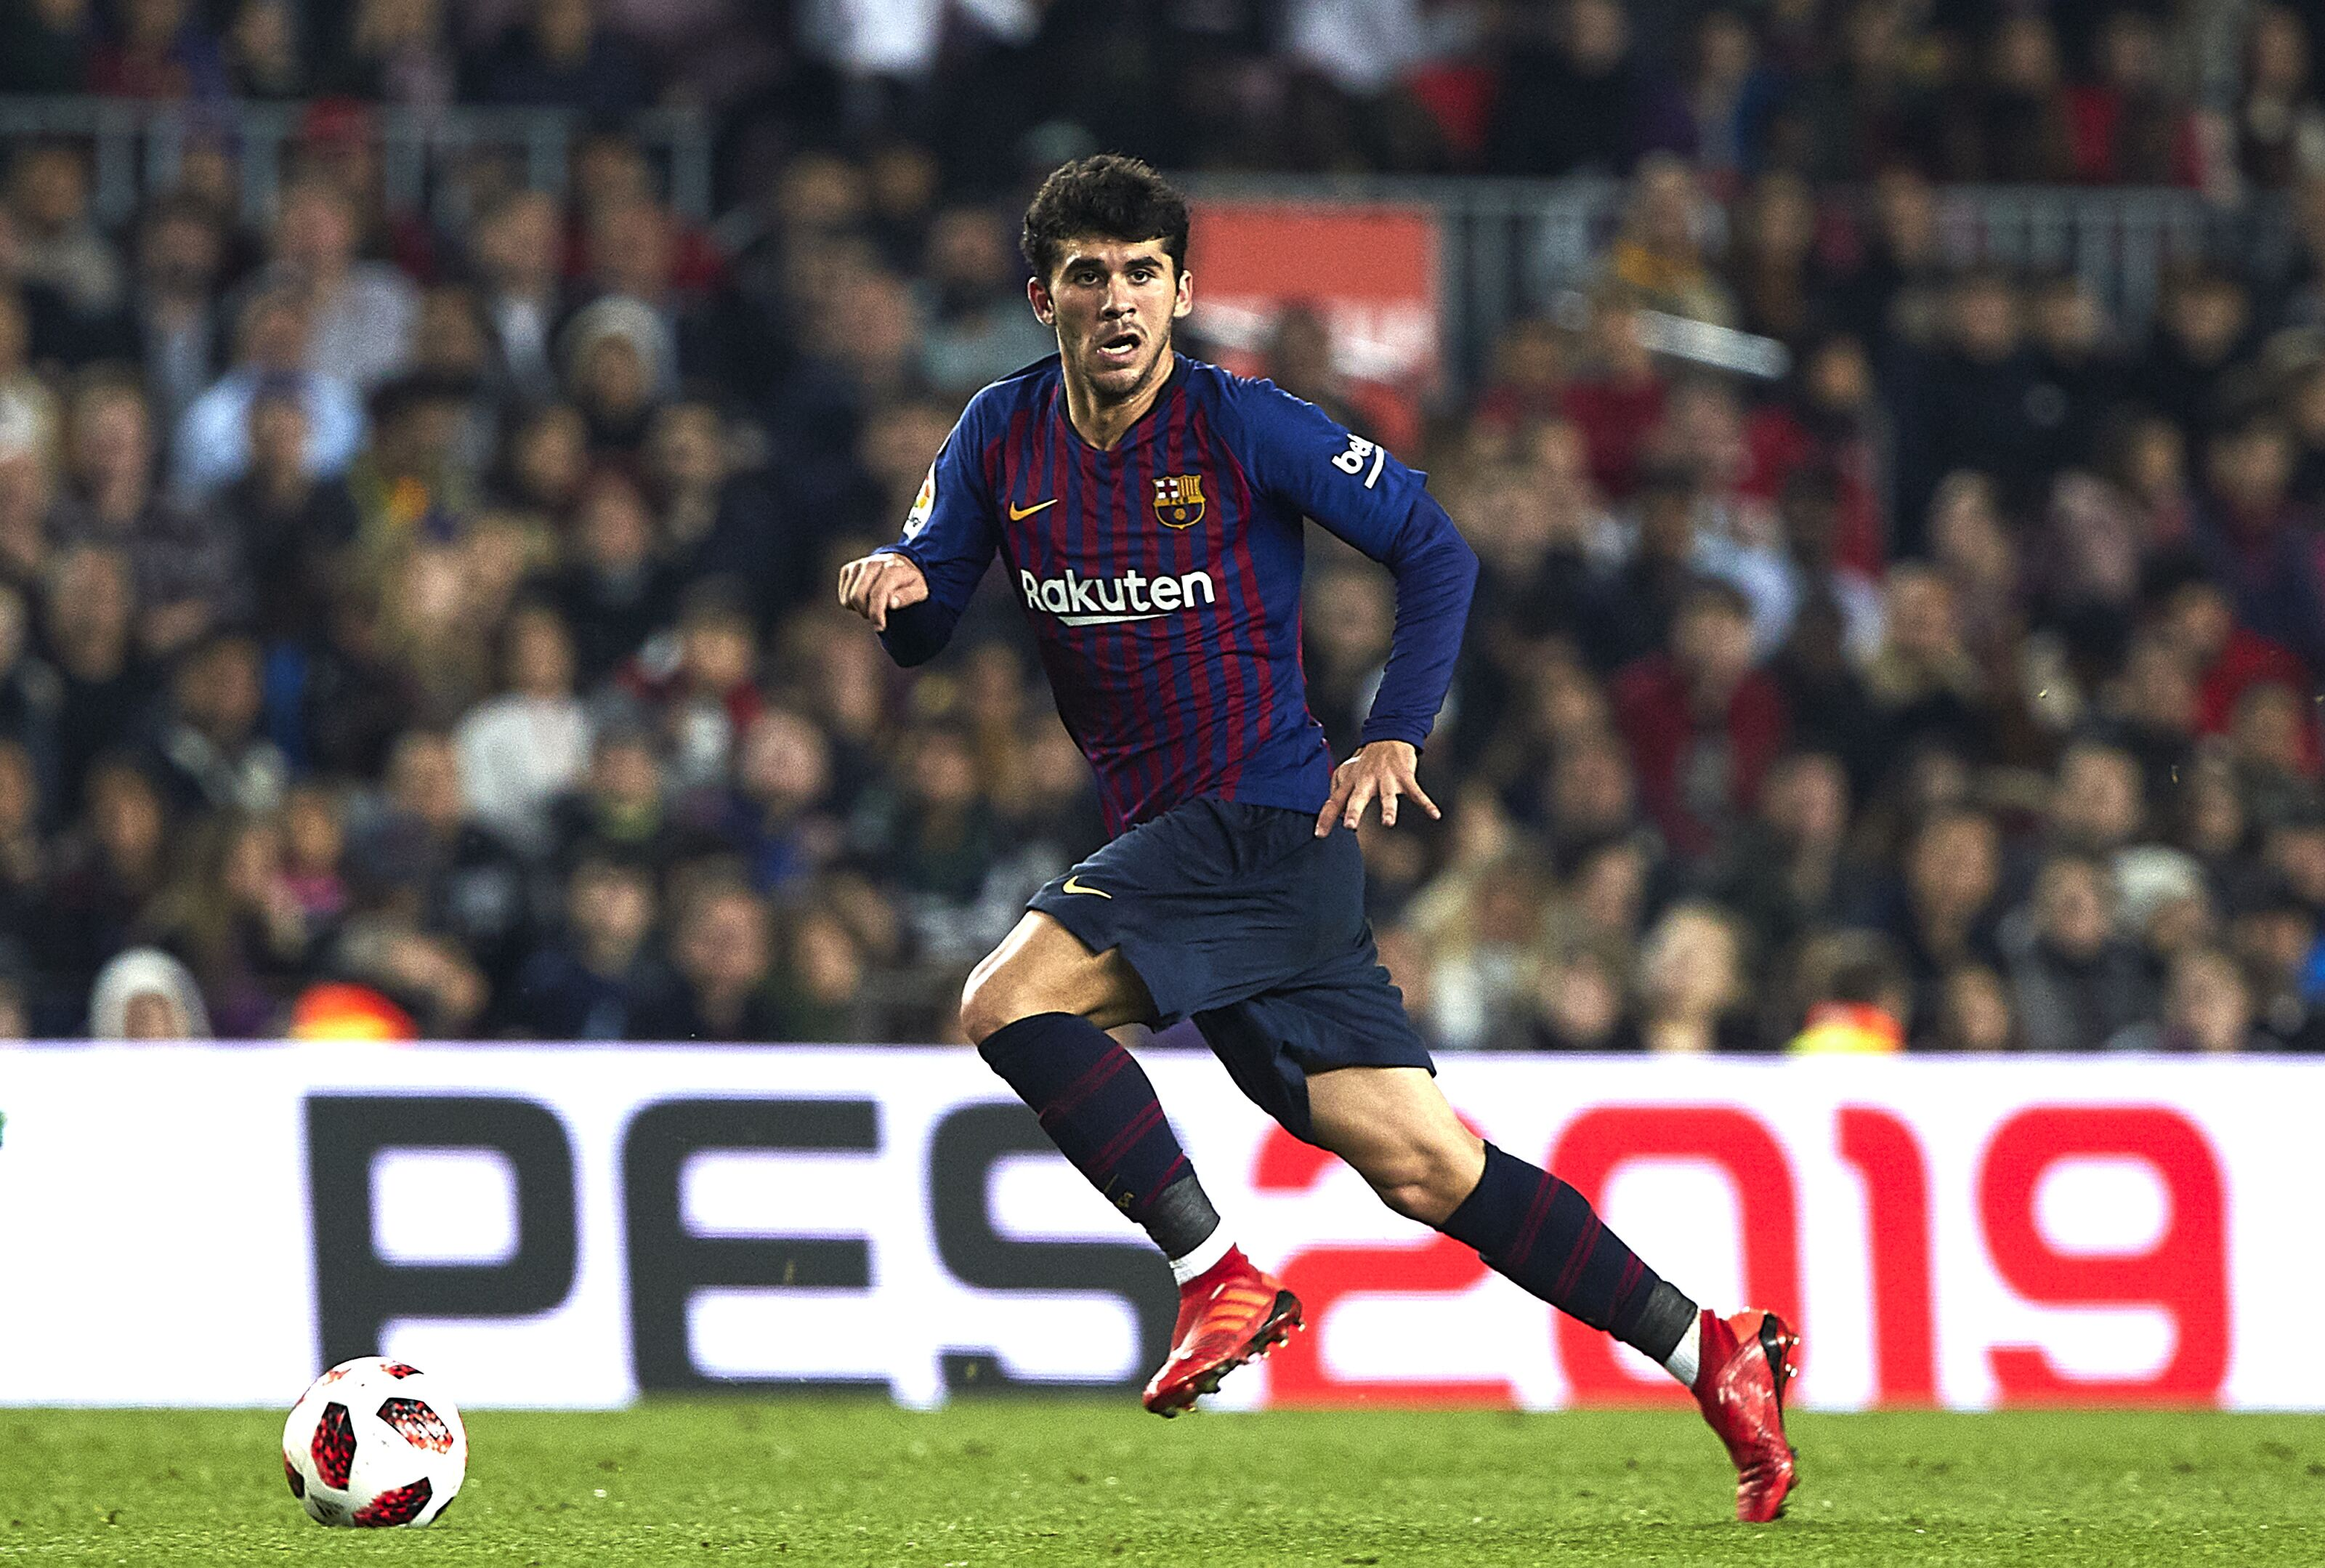 BARCELONA, SPAIN - DECEMBER 05: Carles Alena of FC Barcelona controls the ball during the Spanish Copa del Rey second leg match between FC Barcelona and Cultural Leonesa at Camp Nou on December 05, 2018 in Barcelona, Spain. (Photo by Quality Sport Images/Getty Images)